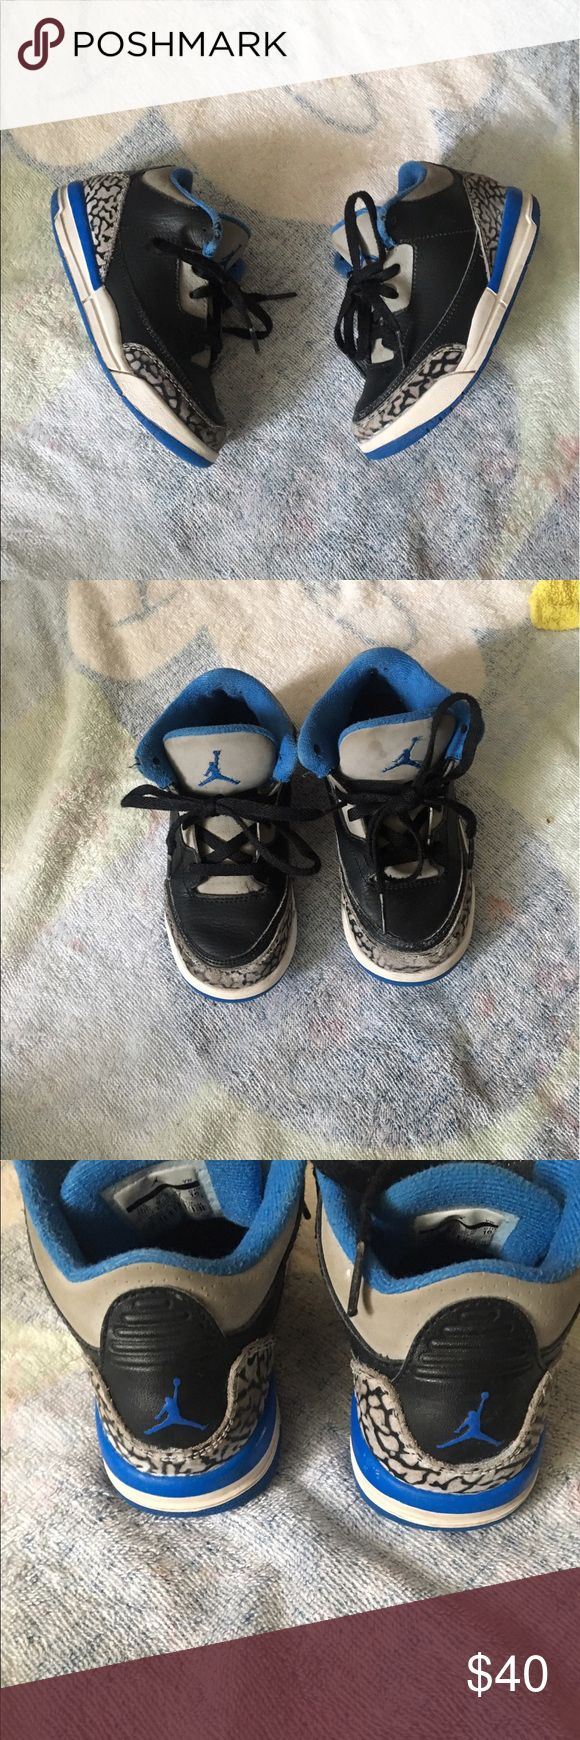 Jordan retro 3s sz 10c Jordan retro 3s Good condition  No box  No free shipping  No holds  Price negotiable  Low offers will be ignored  Bundle to save   Jordan , Nike, sneakers, shoes , boy , girl , toddler Jordan Shoes Sneakers